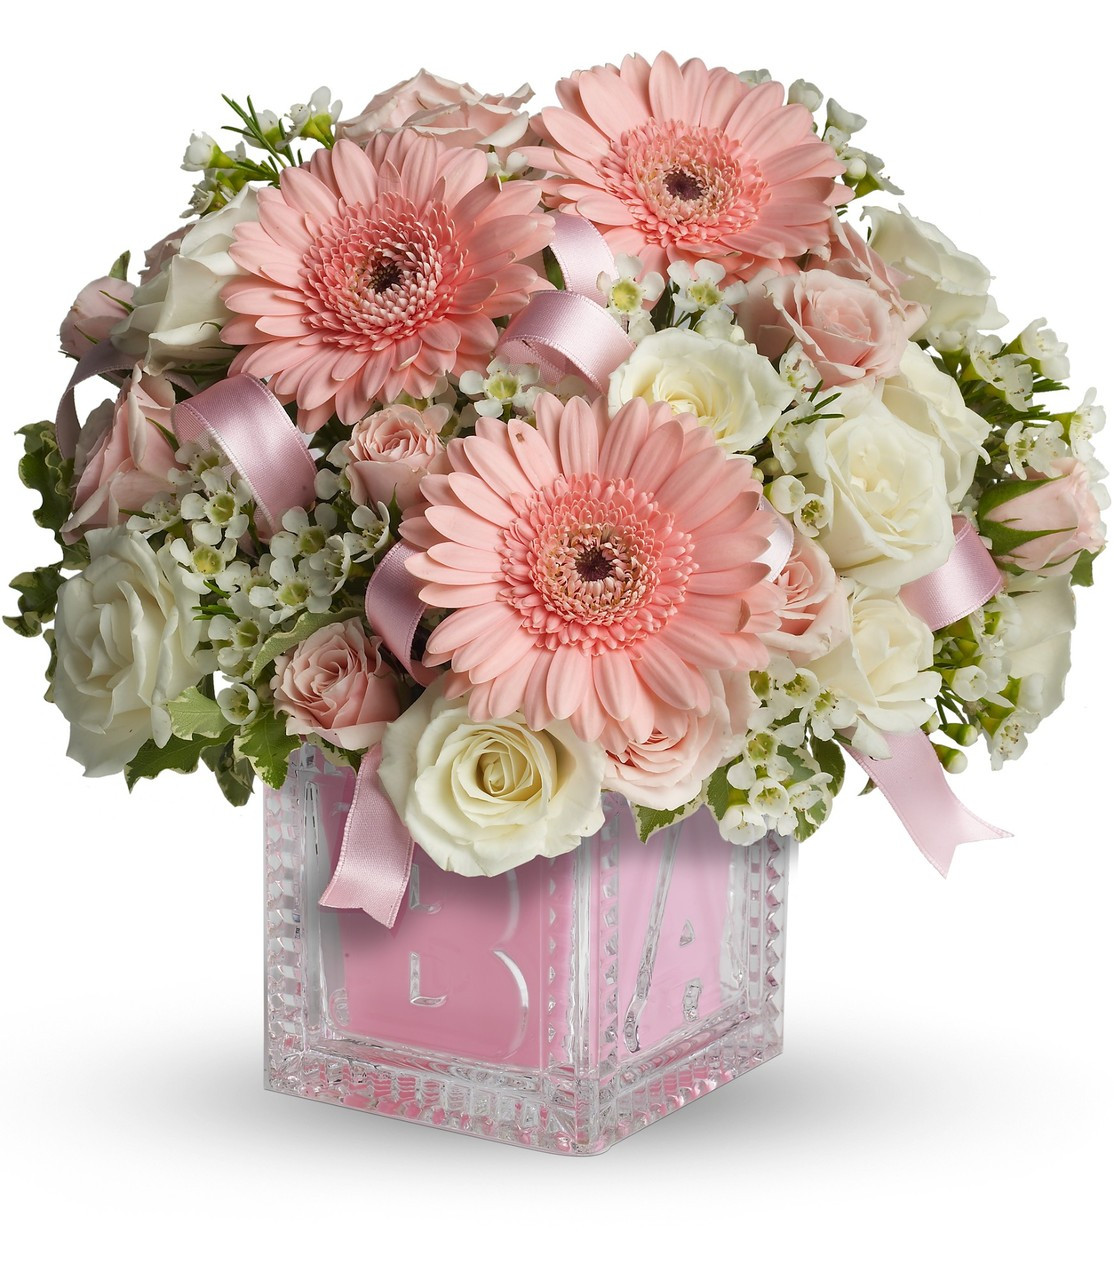 New baby girl flowers | Send Flowers to Calgary